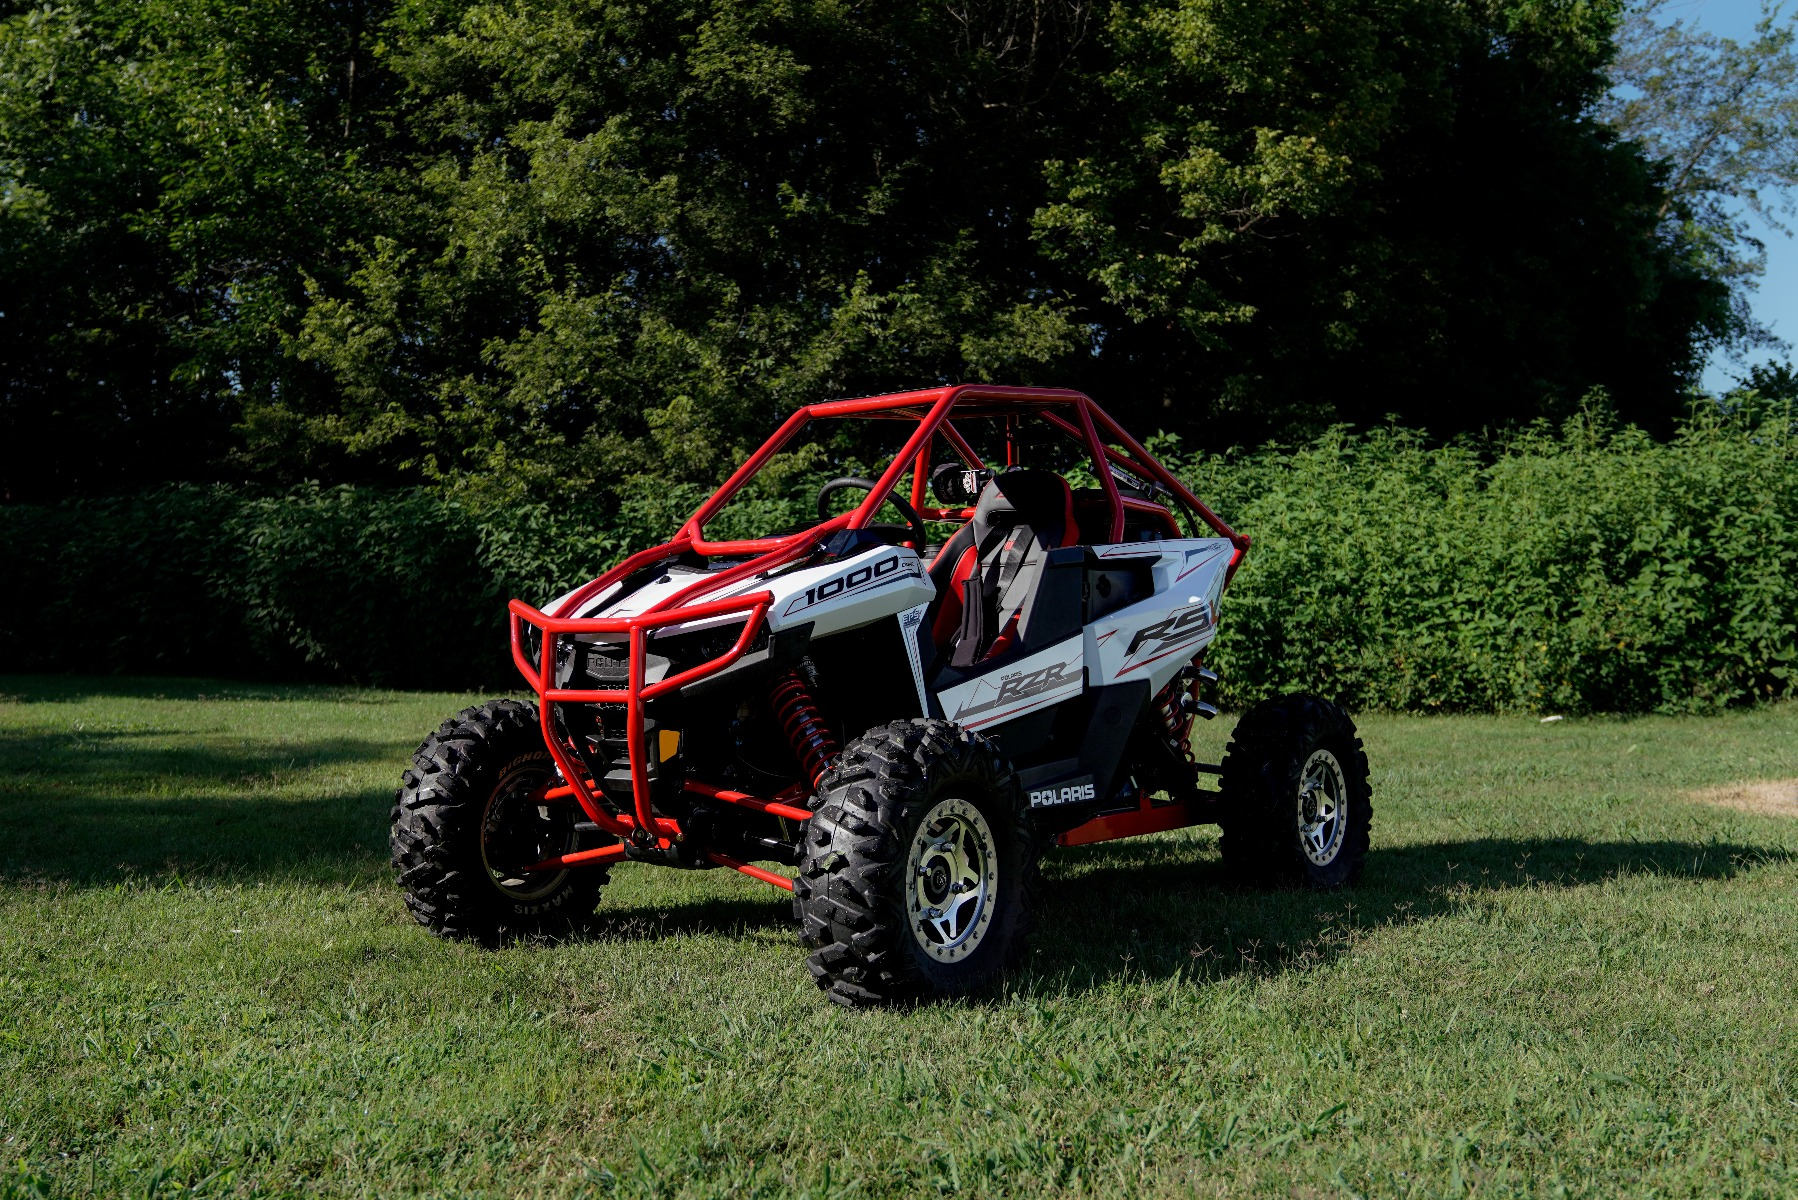 Polaris RZR RS1 Roll Cage in grass Image 11